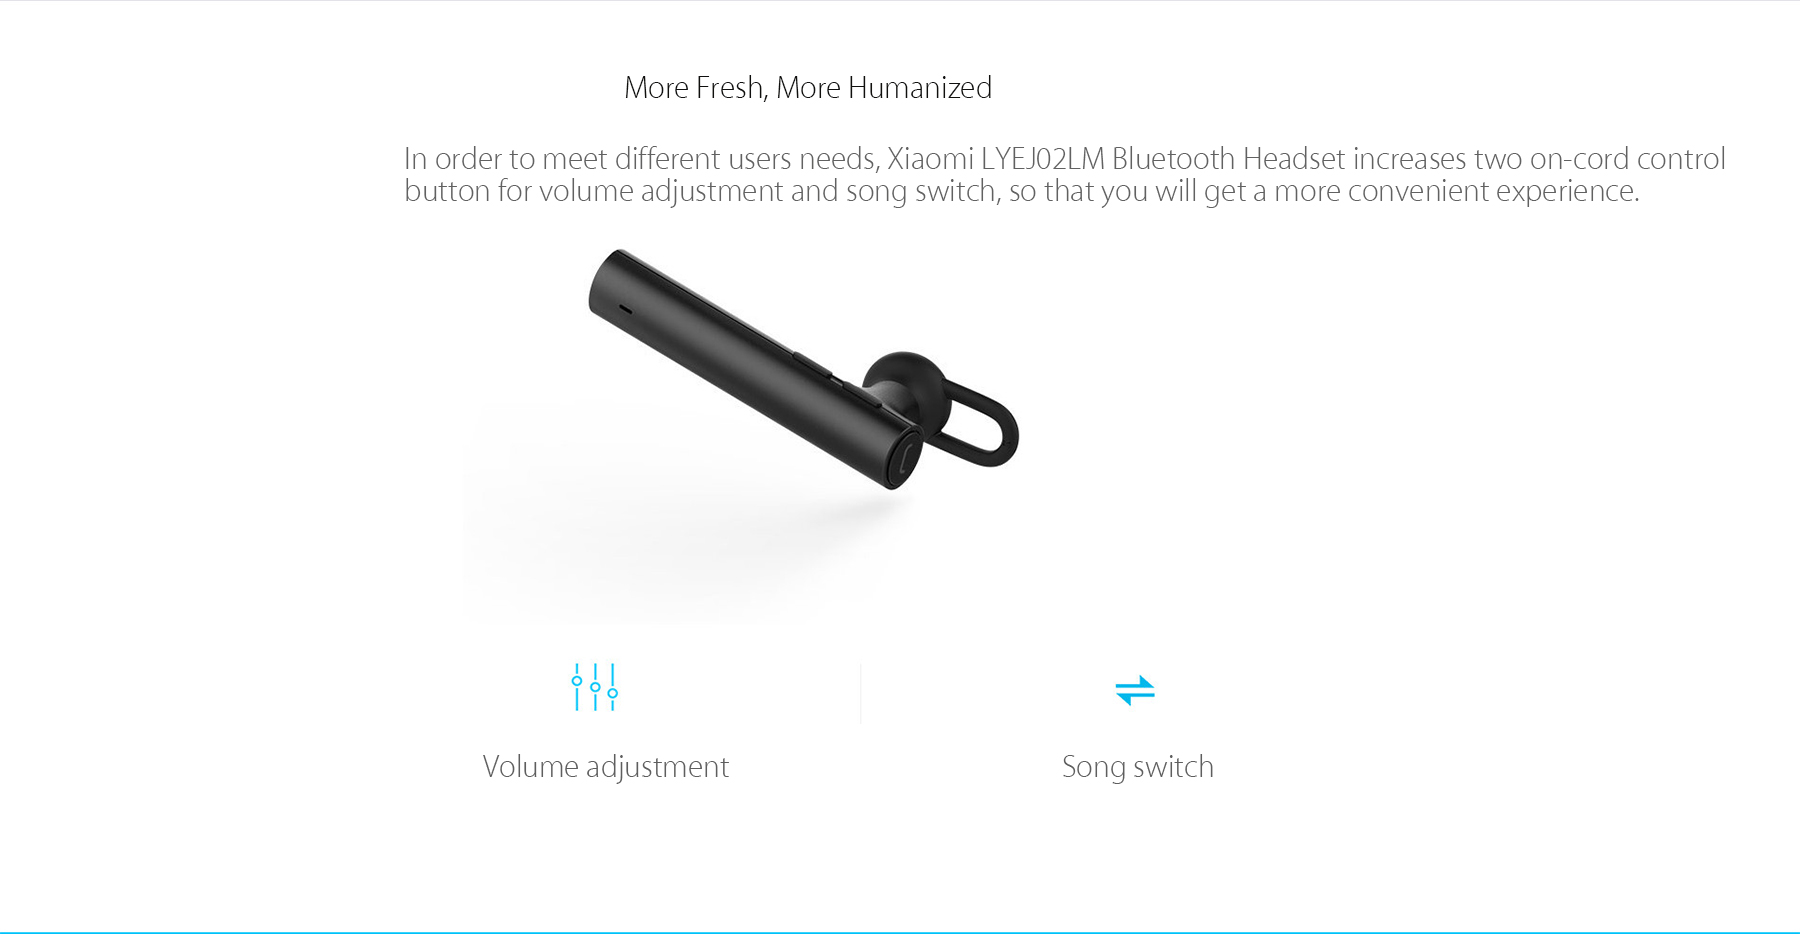 New Version Ori XIAOMI Mi Bluetooth (end 1/27/2020 12:59 PM)